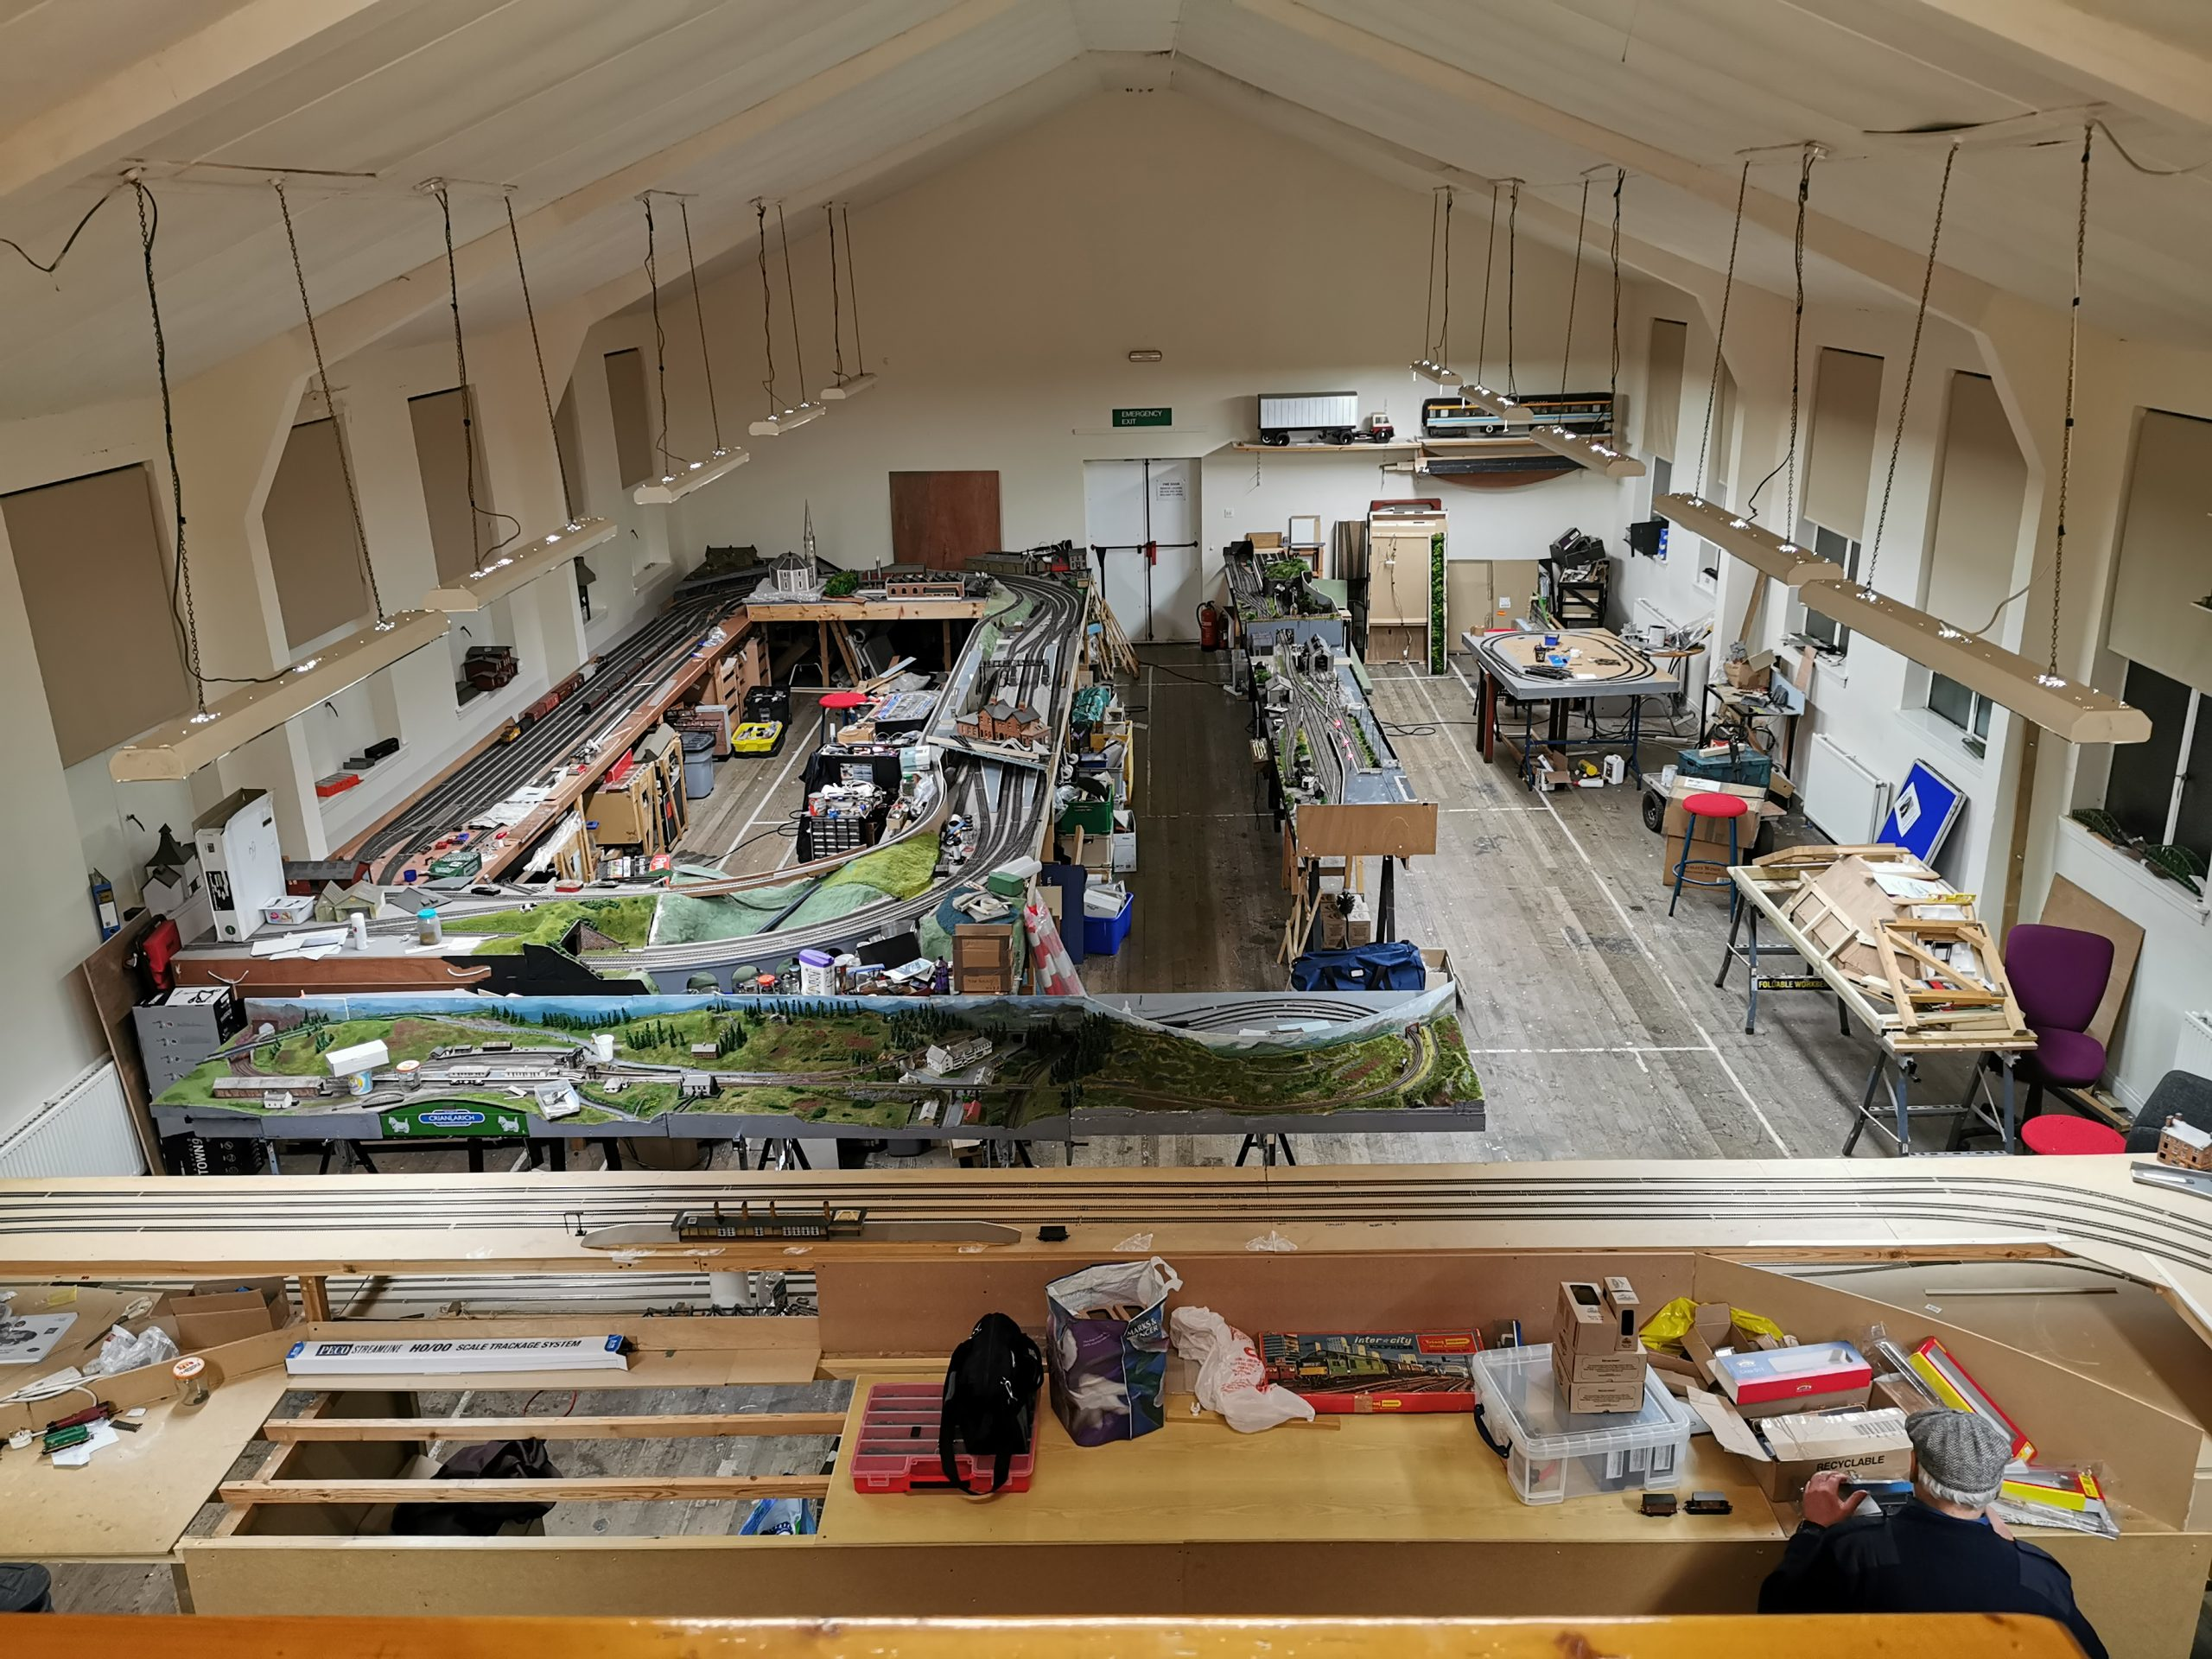 Full view of the main club room of at at Renfrewshire Model Railway club